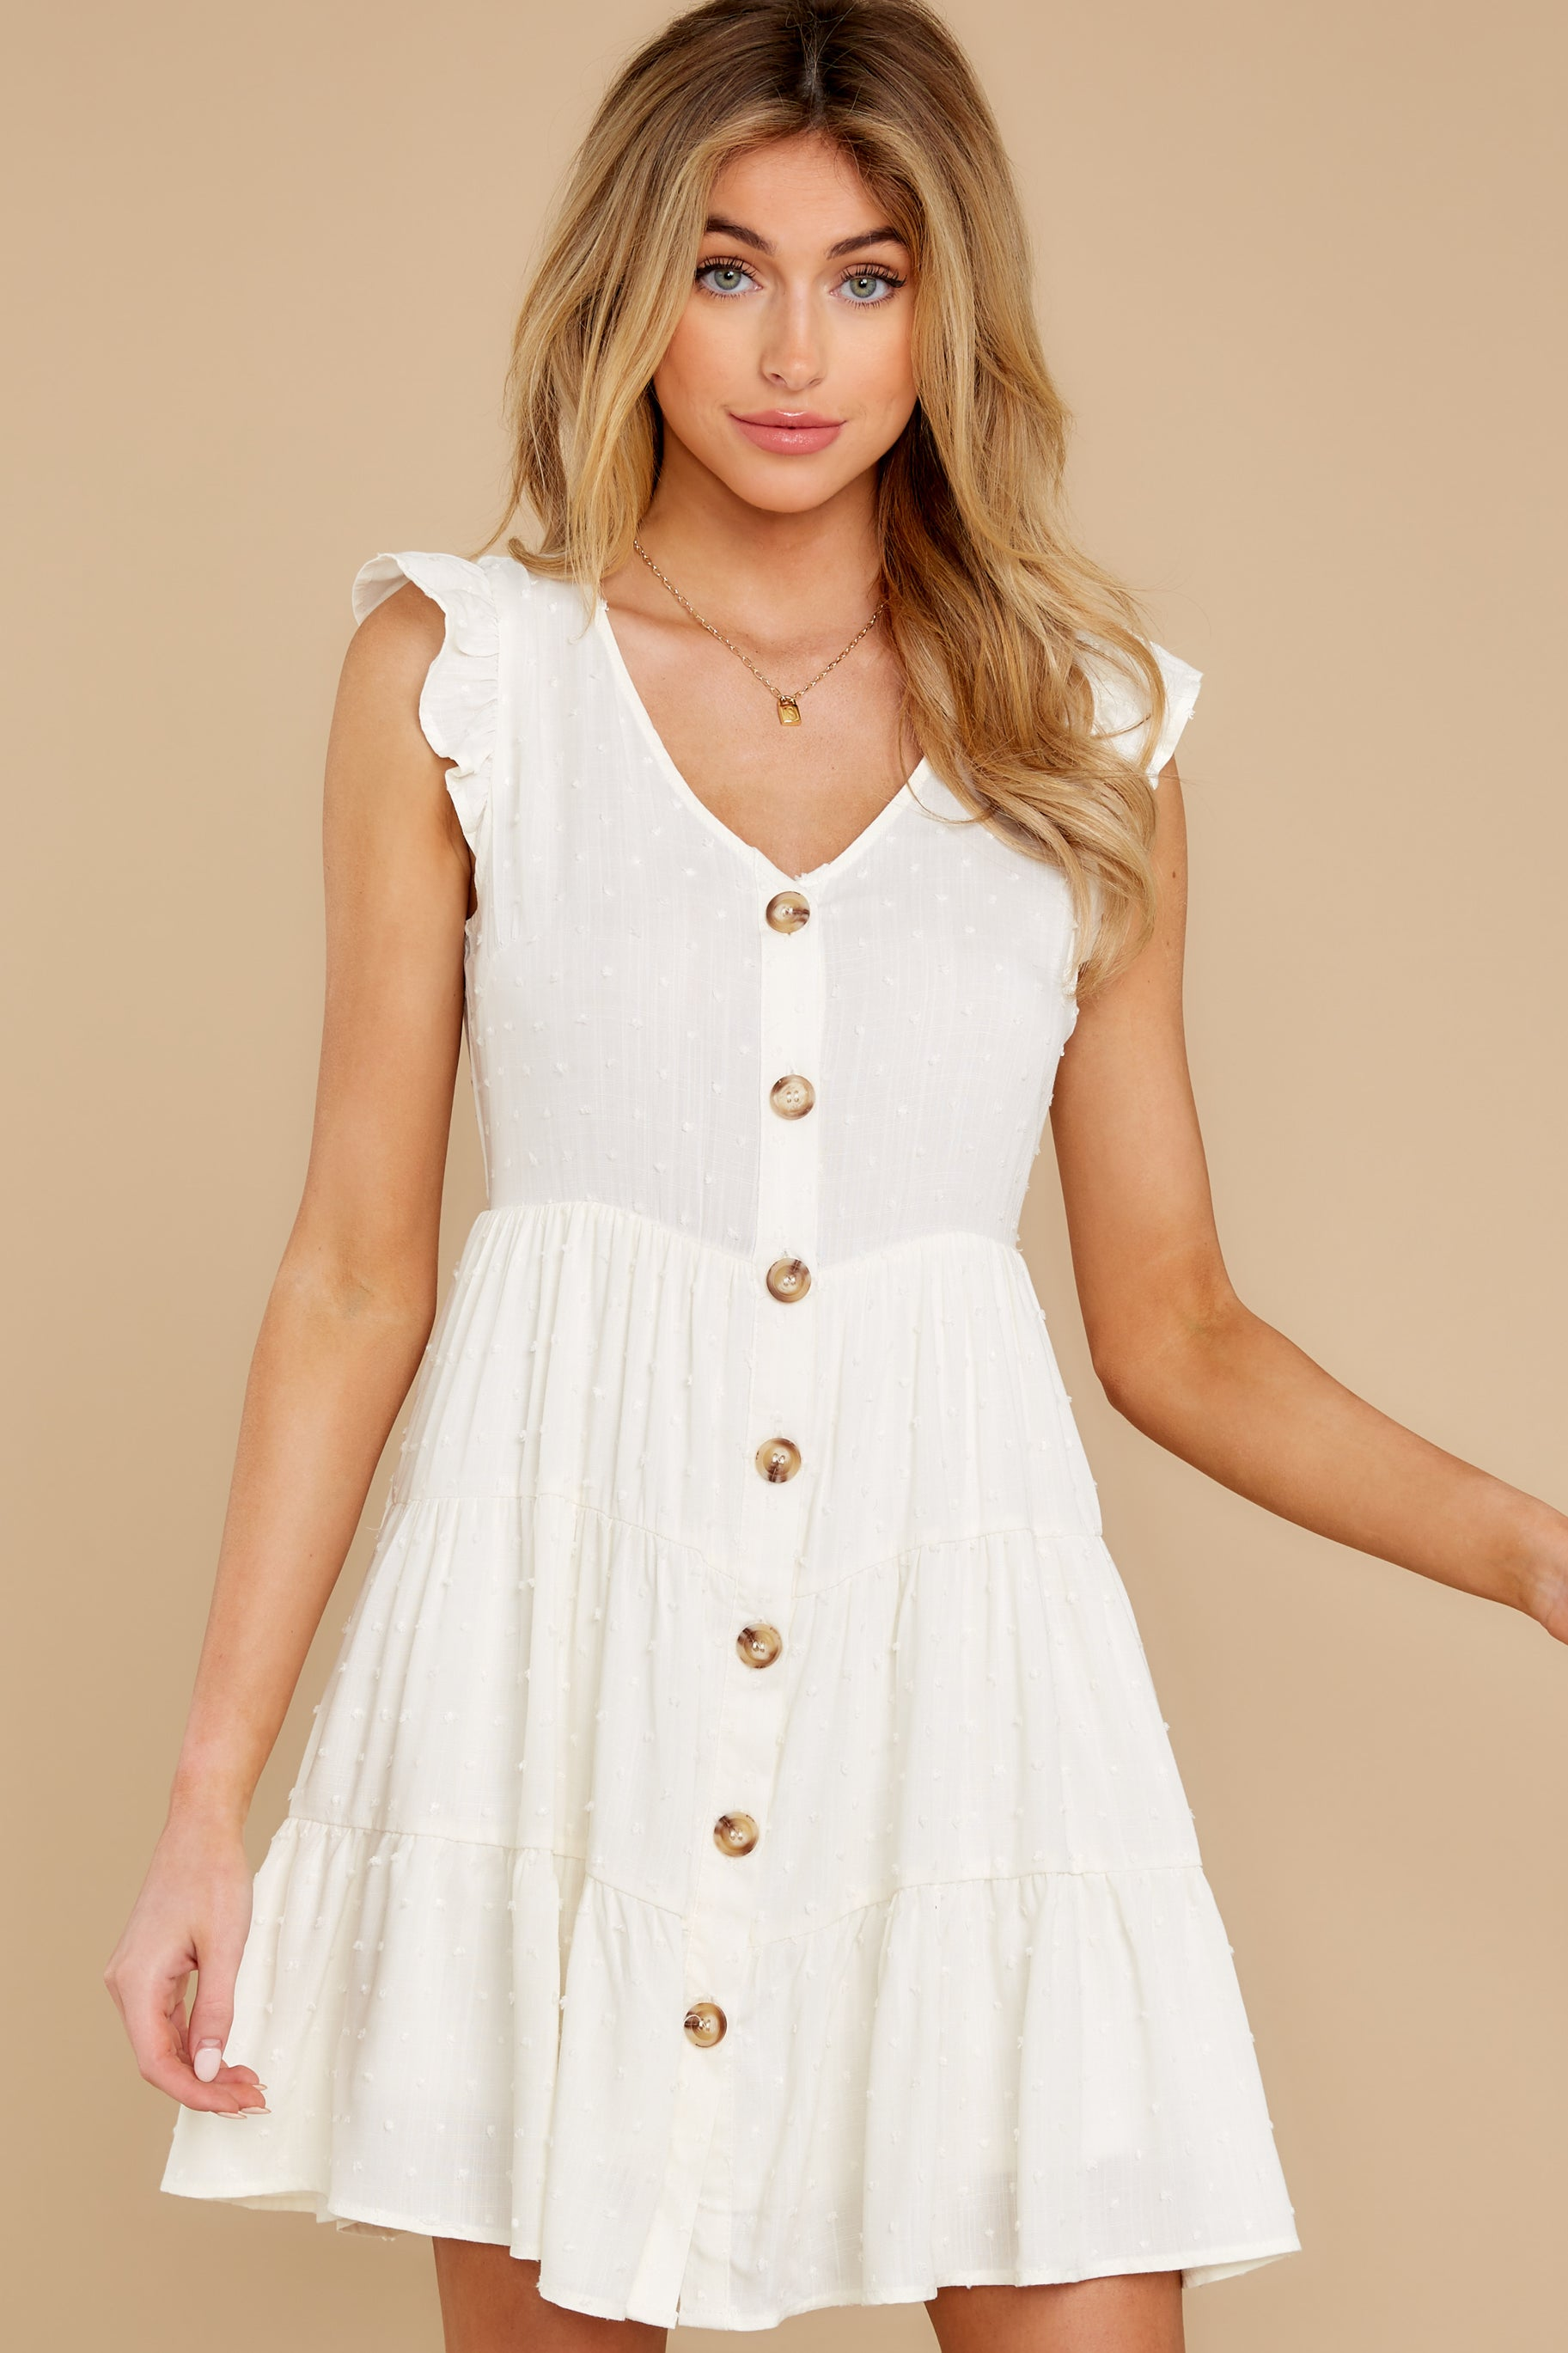 5 With Promises White Dress at reddress.com